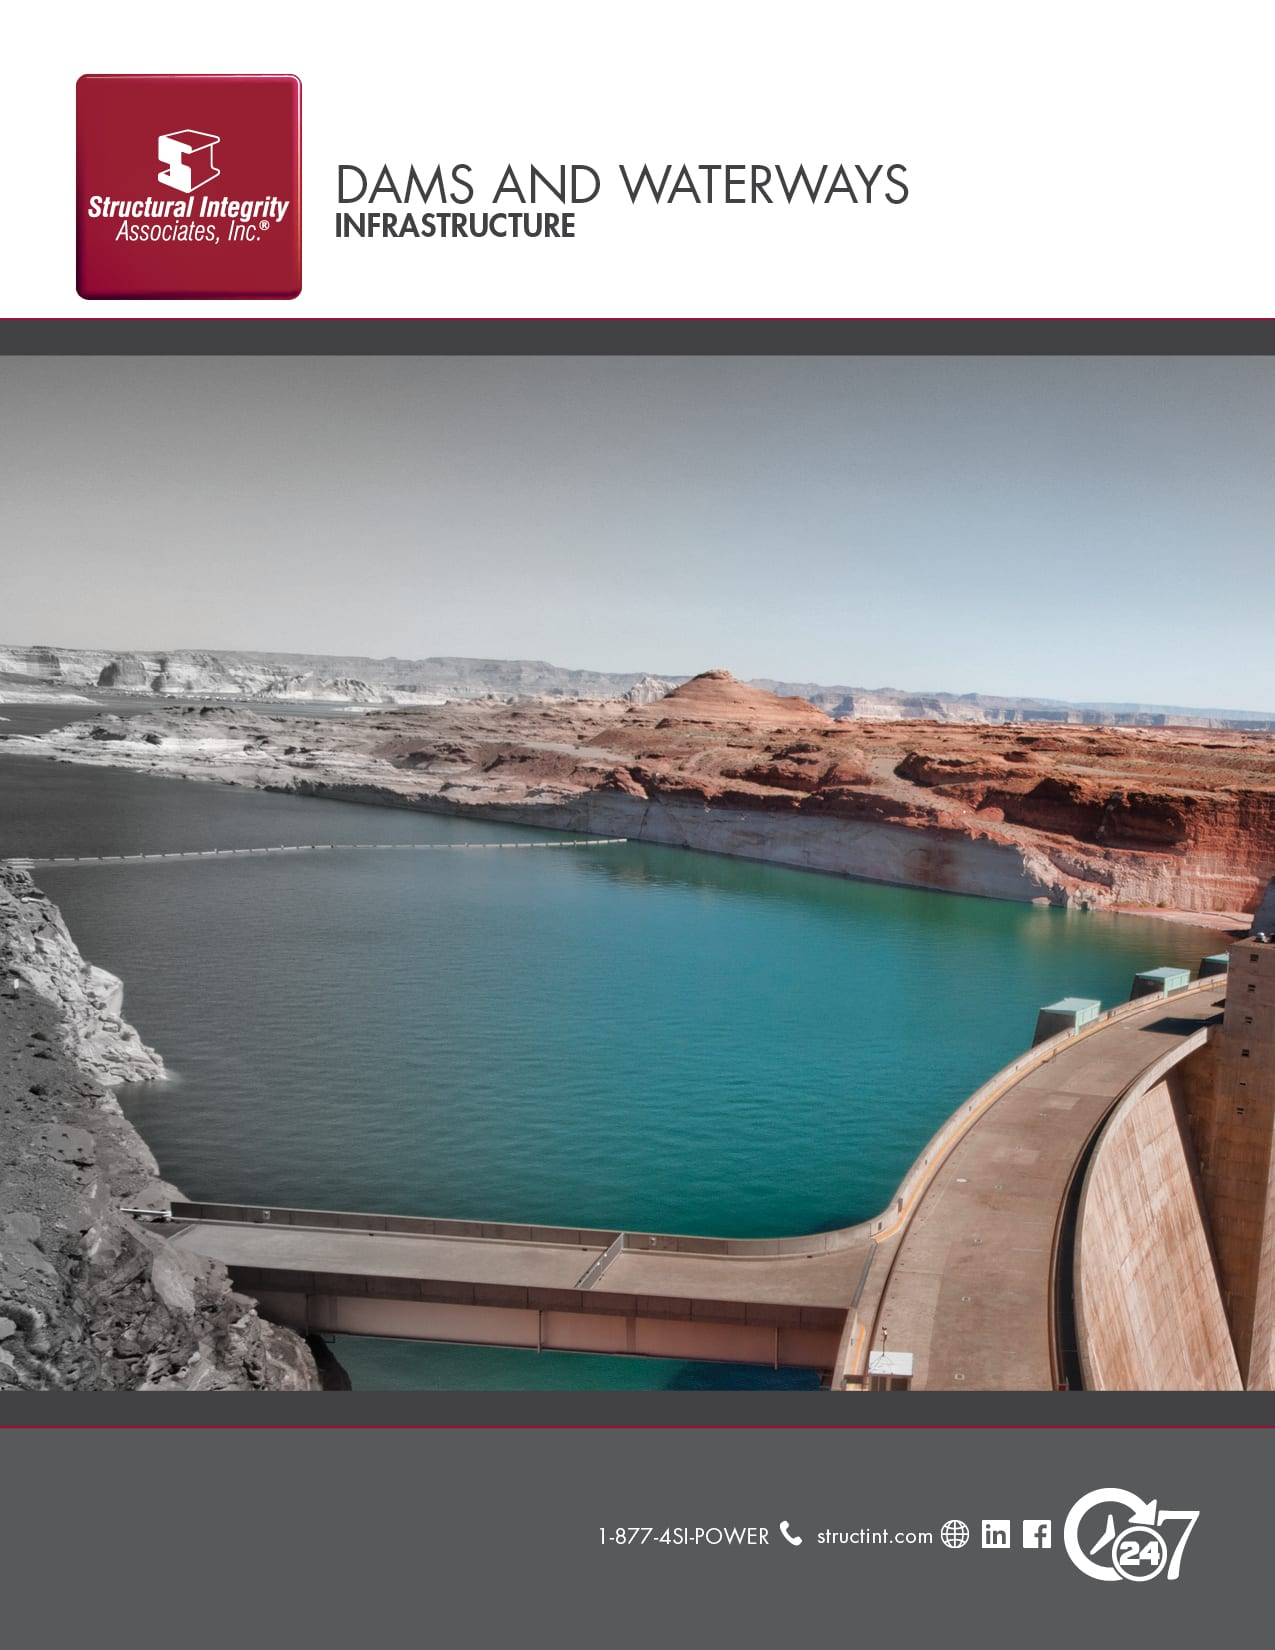 Dams and Waterway Infrastructure Qualifications